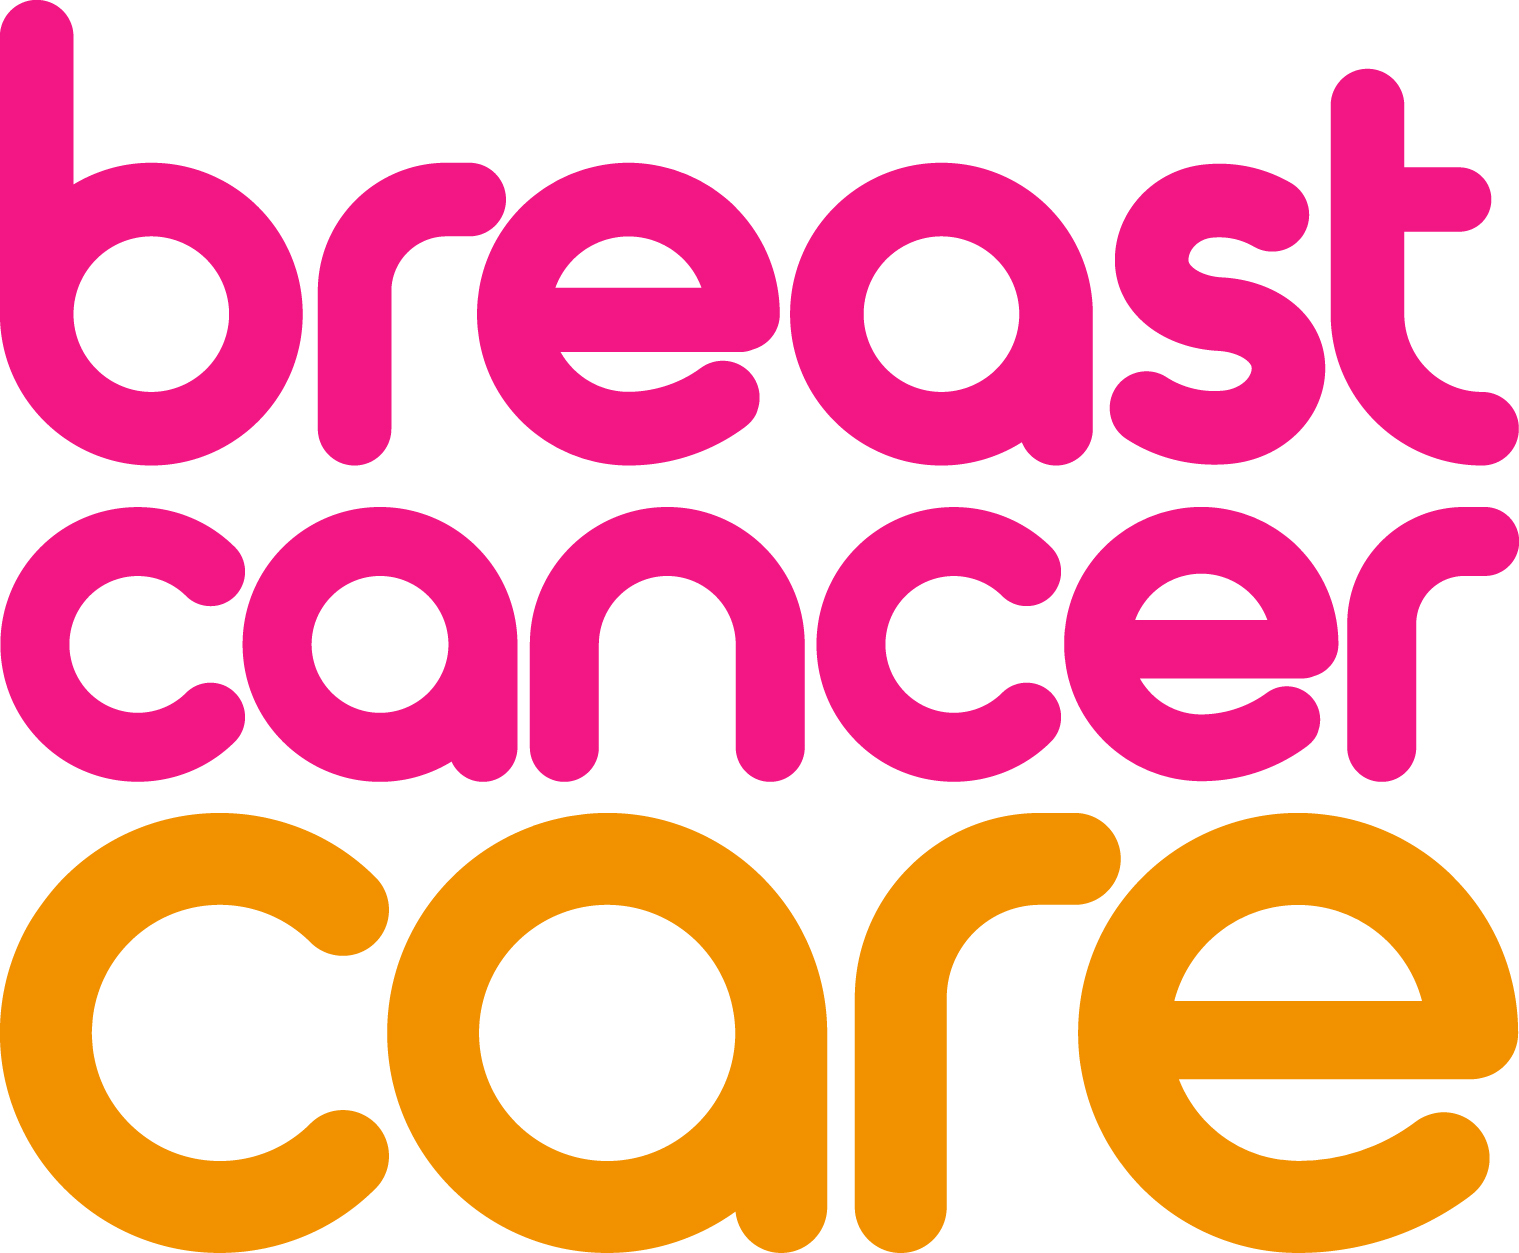 Breast Cancer Care - Wikipedia